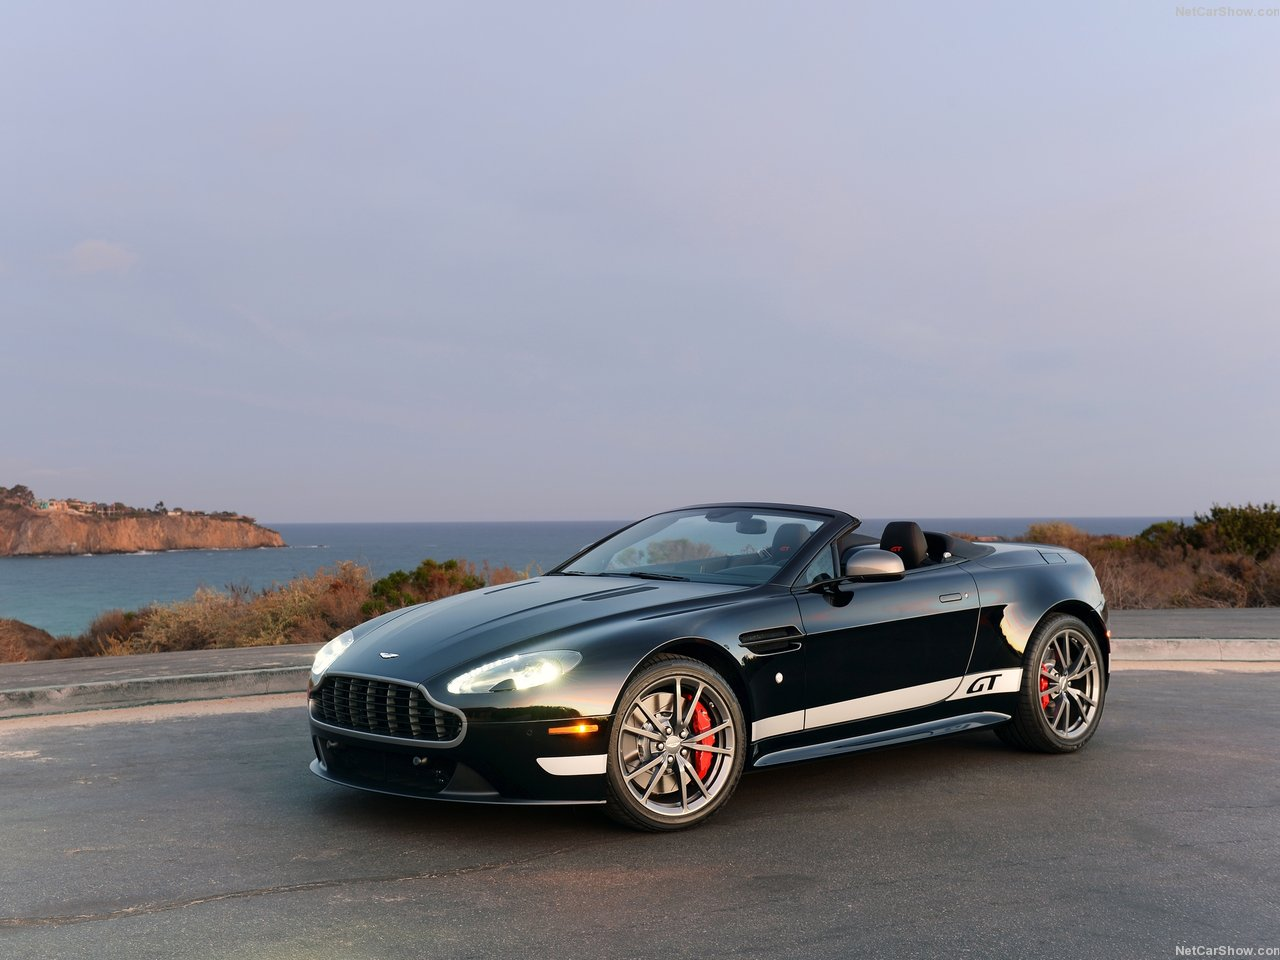 Aston Martin V8 Vantage GT Roadster photo 138297